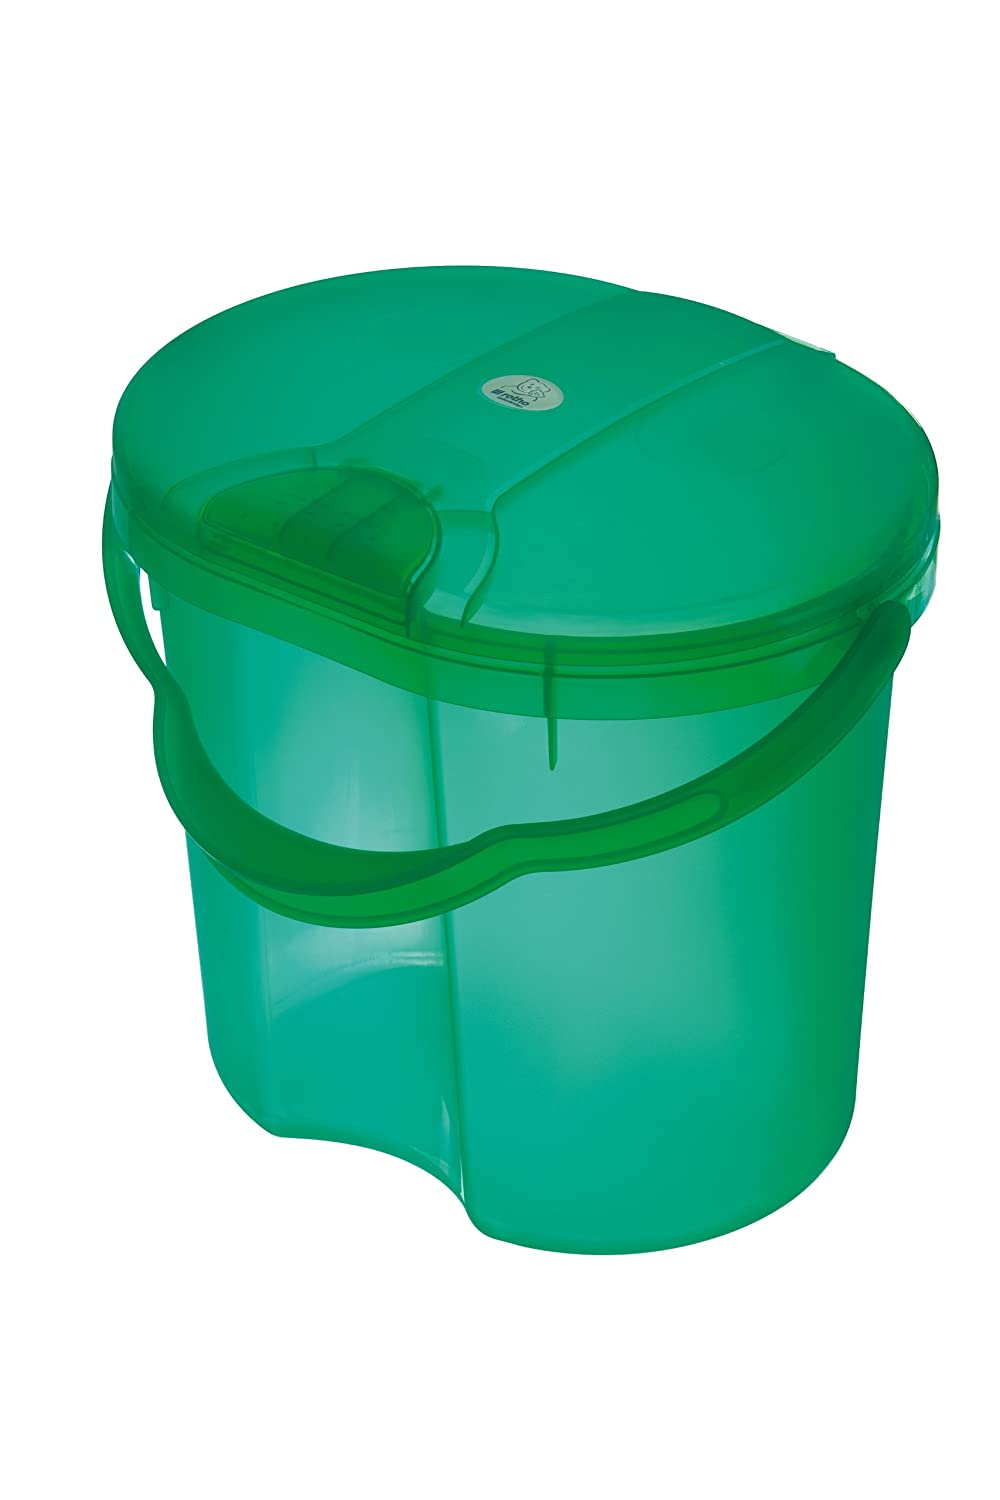 Rotho Baby Design Topline Translucent Nappy Pail, Green Guzzie + Guss 20002-0211